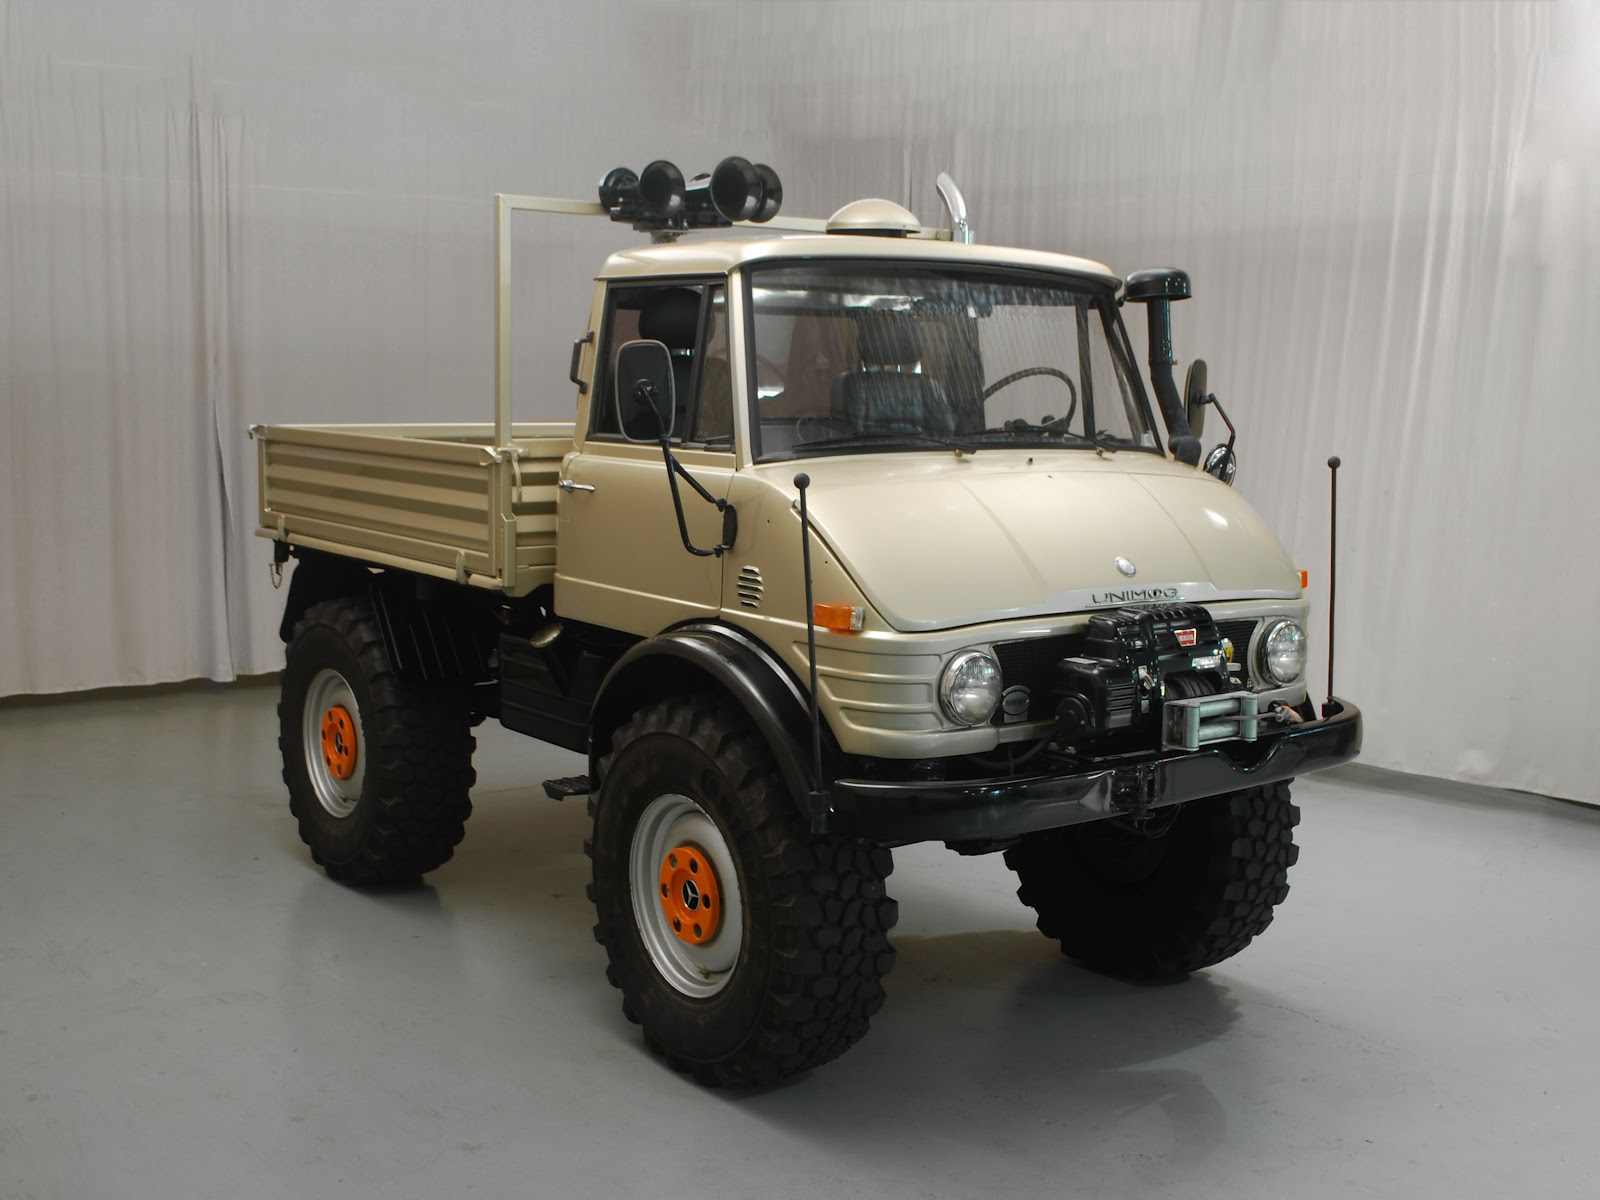 4x4 rc trucks for sale with 1974 Unimog on Ebay Find Of The Day Jeep Wrangler Jurassic Park Edition in addition 1023250 hennessey Gives The Ford F 150 Raptor 605 Hp 4 2 Second 0 60 Time moreover Watch besides 1974 Unimog besides 1958 DODGE POWER WAGON CUSTOM 4X4 201909.